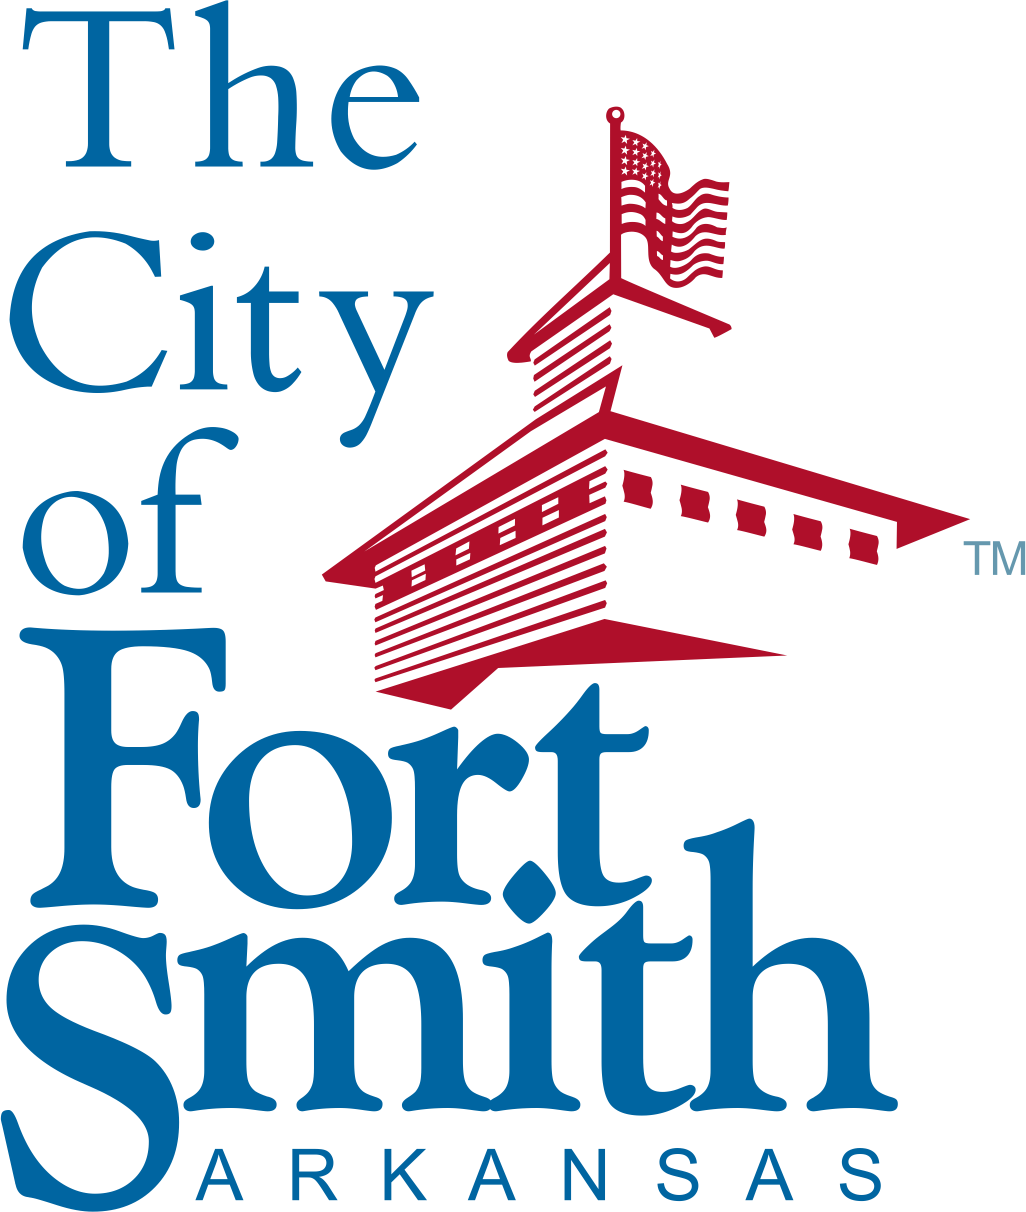 City of Fort Smith, Arkansas